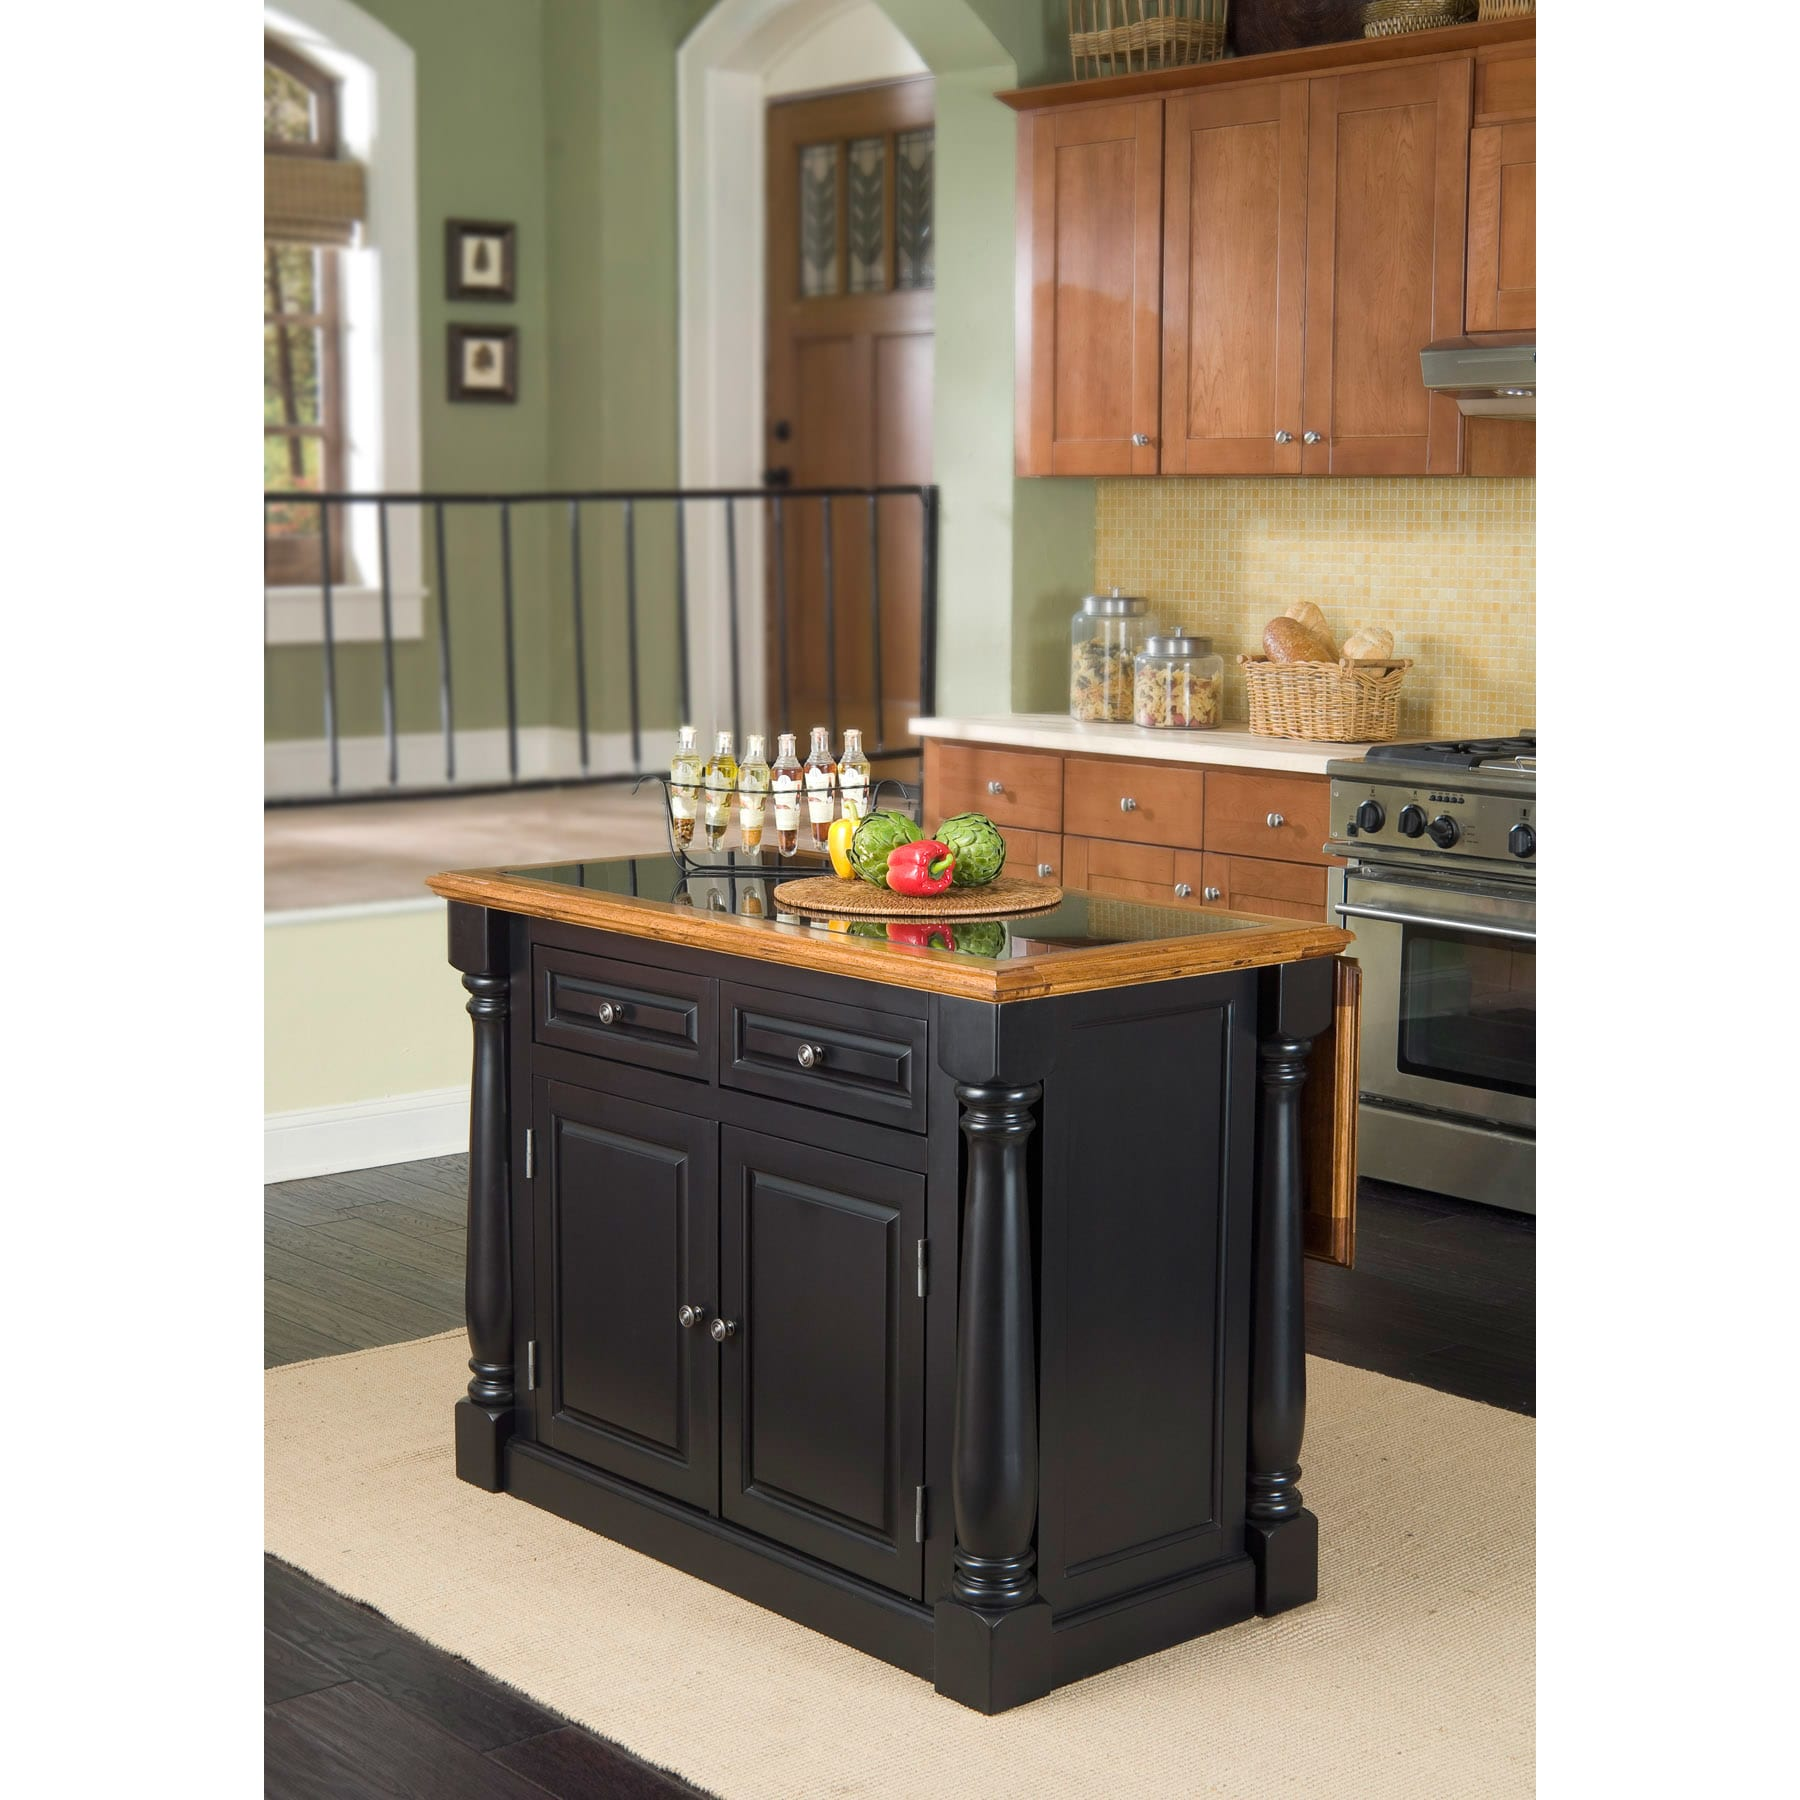 Distressed Oak and Granite Top Black Wooden Kitchen Island